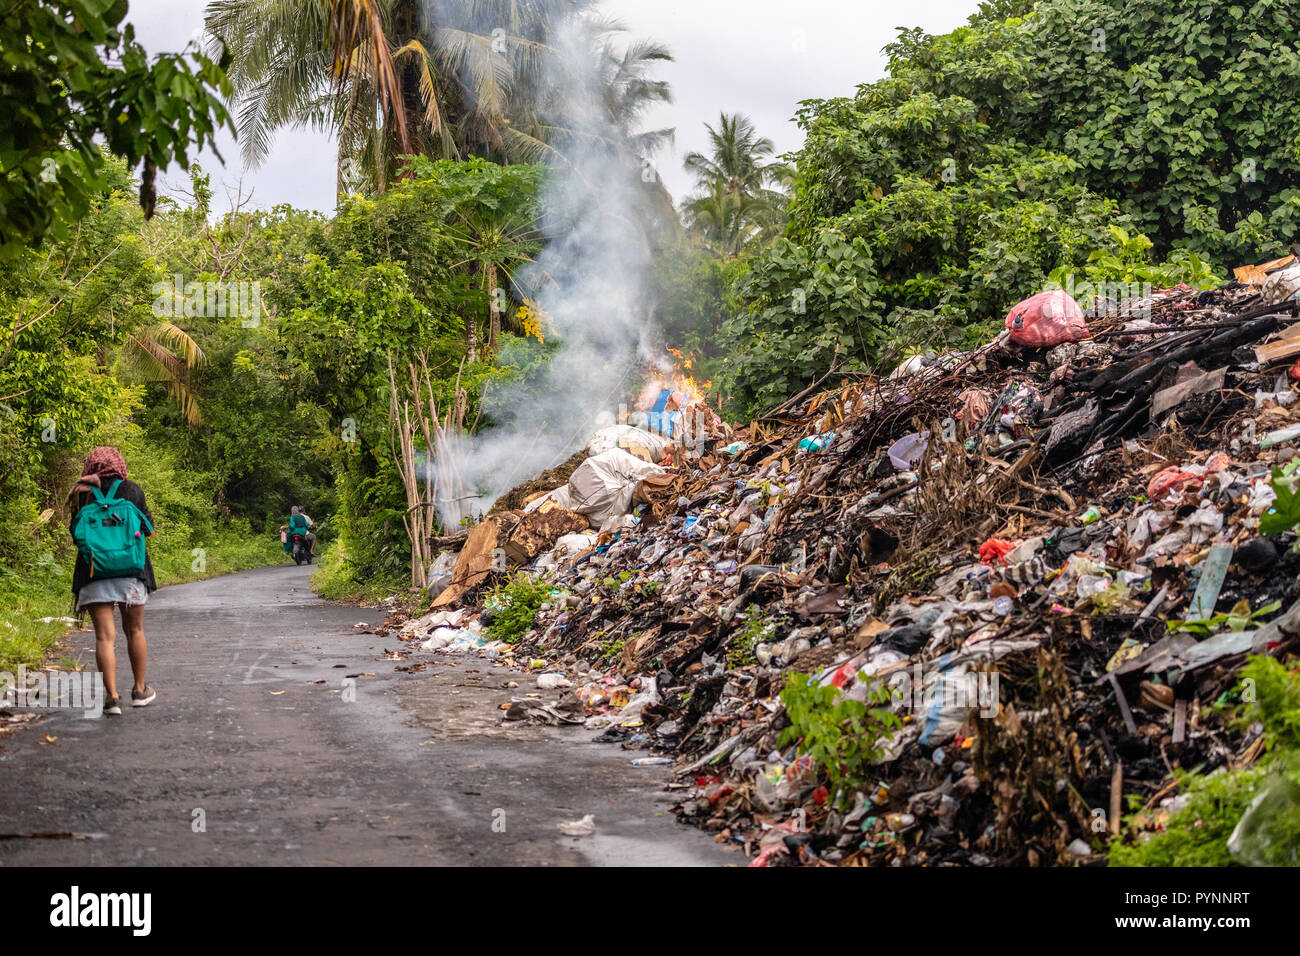 Tons of industrial rubbish burning along the road in the Banda Neira island, Indonesia Stock Photo